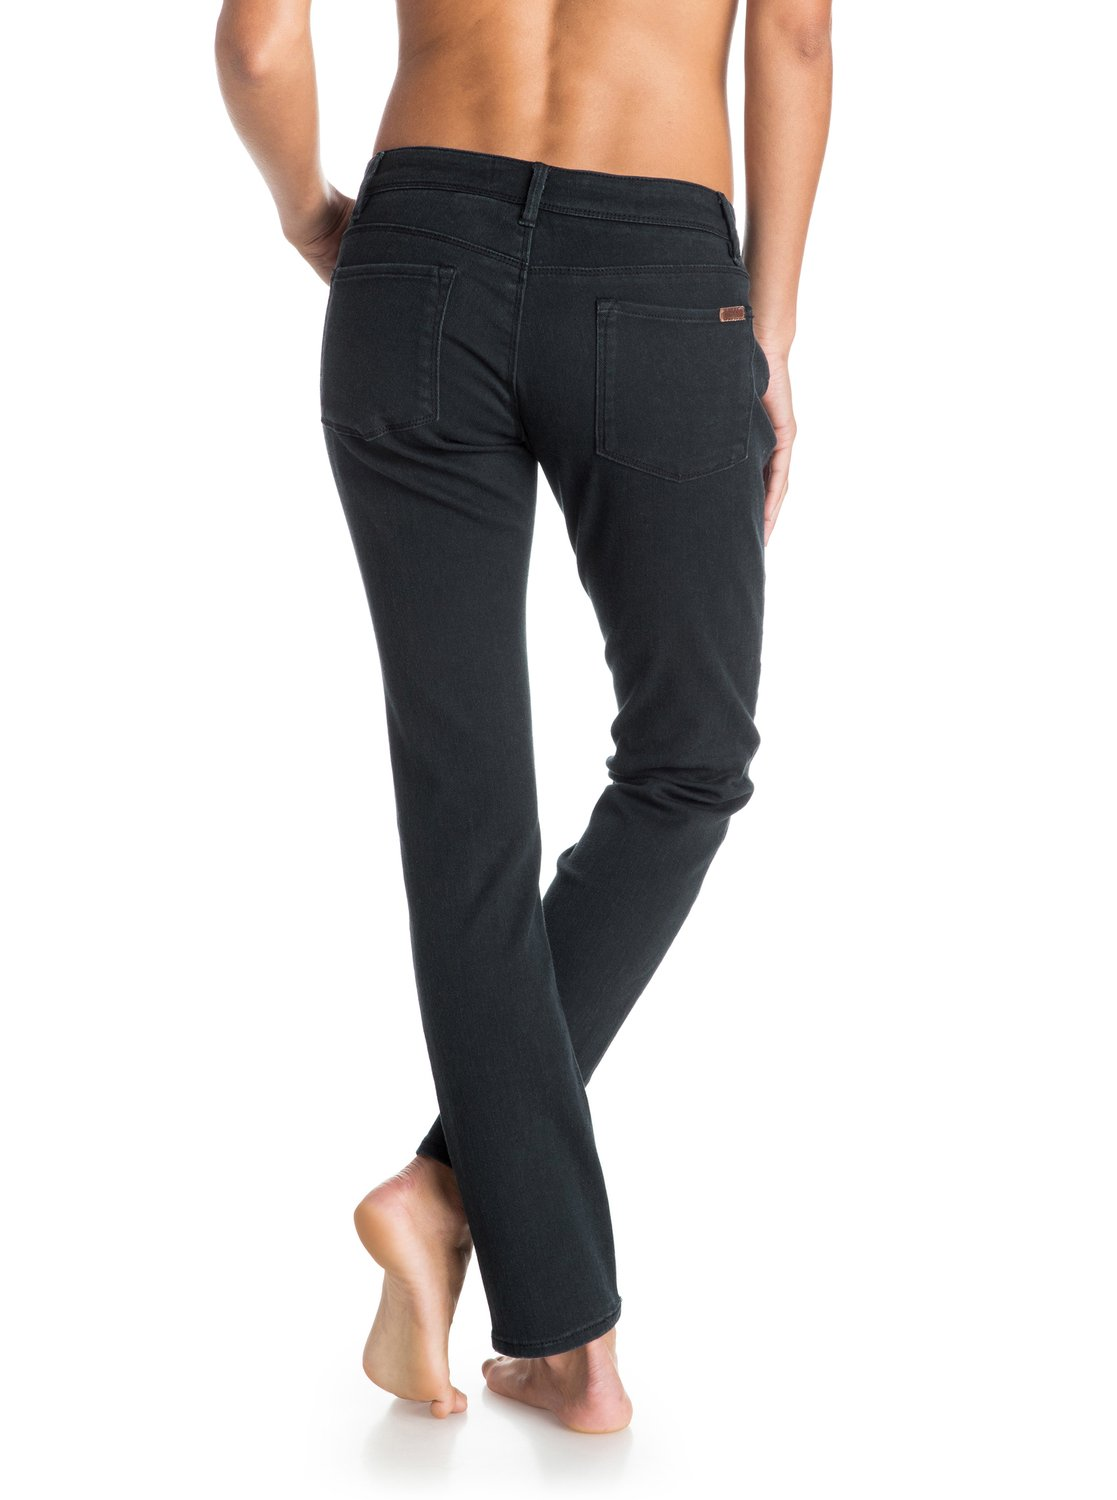 Show your true colors with colored denim from cripatsur.ga Colored high-waisted super skinny jeans, skin-tight leggings & black ripped jeans available!